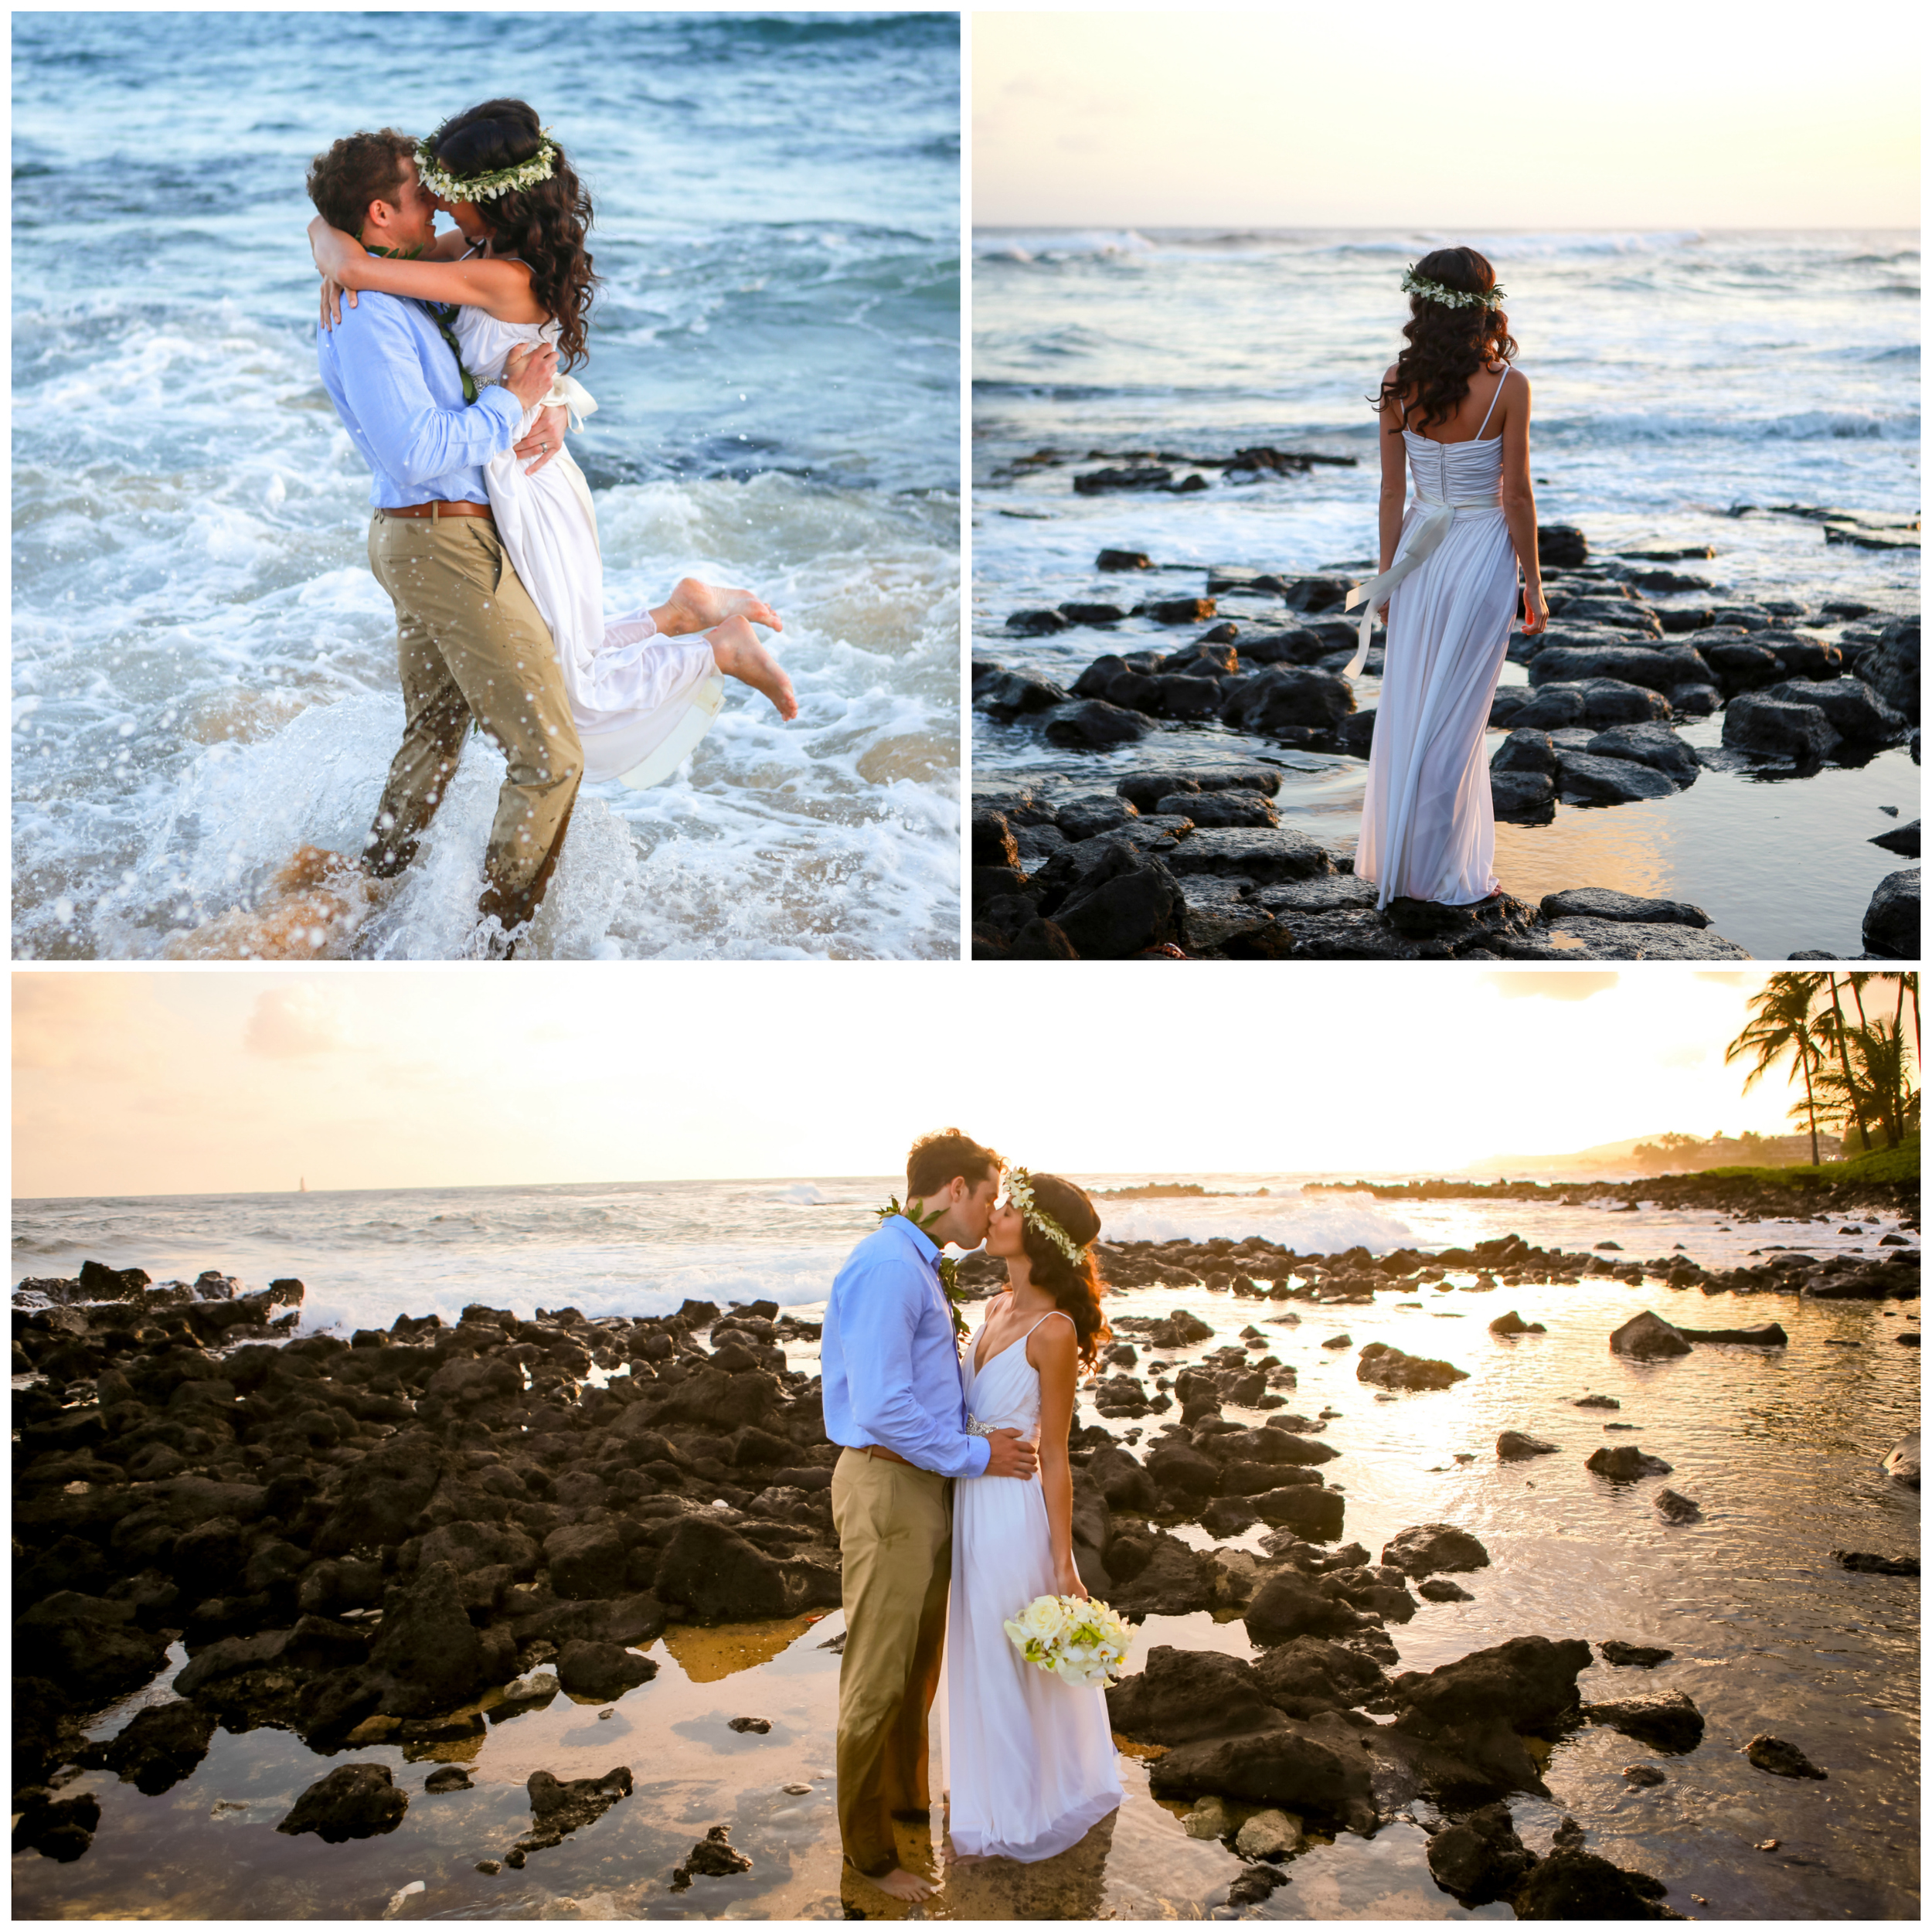 Hawaii Beach Wedding Photography Coral Weddings